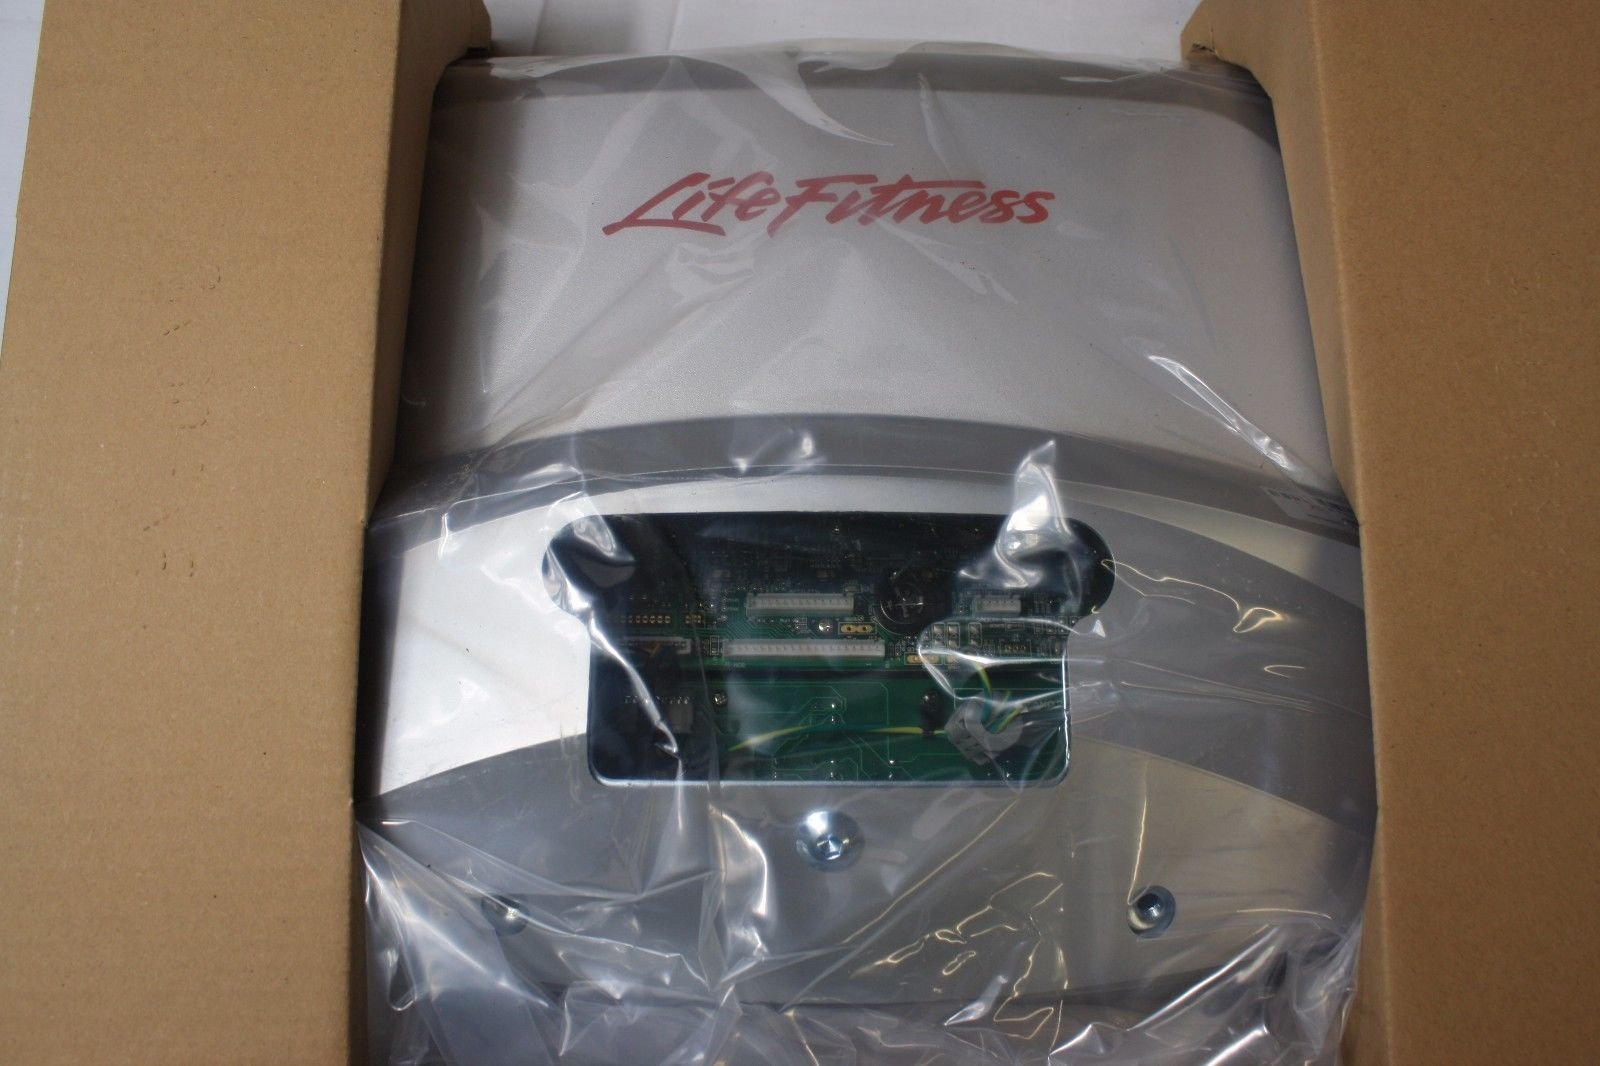 Life Fitness Track Track+ Display Console for F3 & T3 Treadmill by Life Fitness